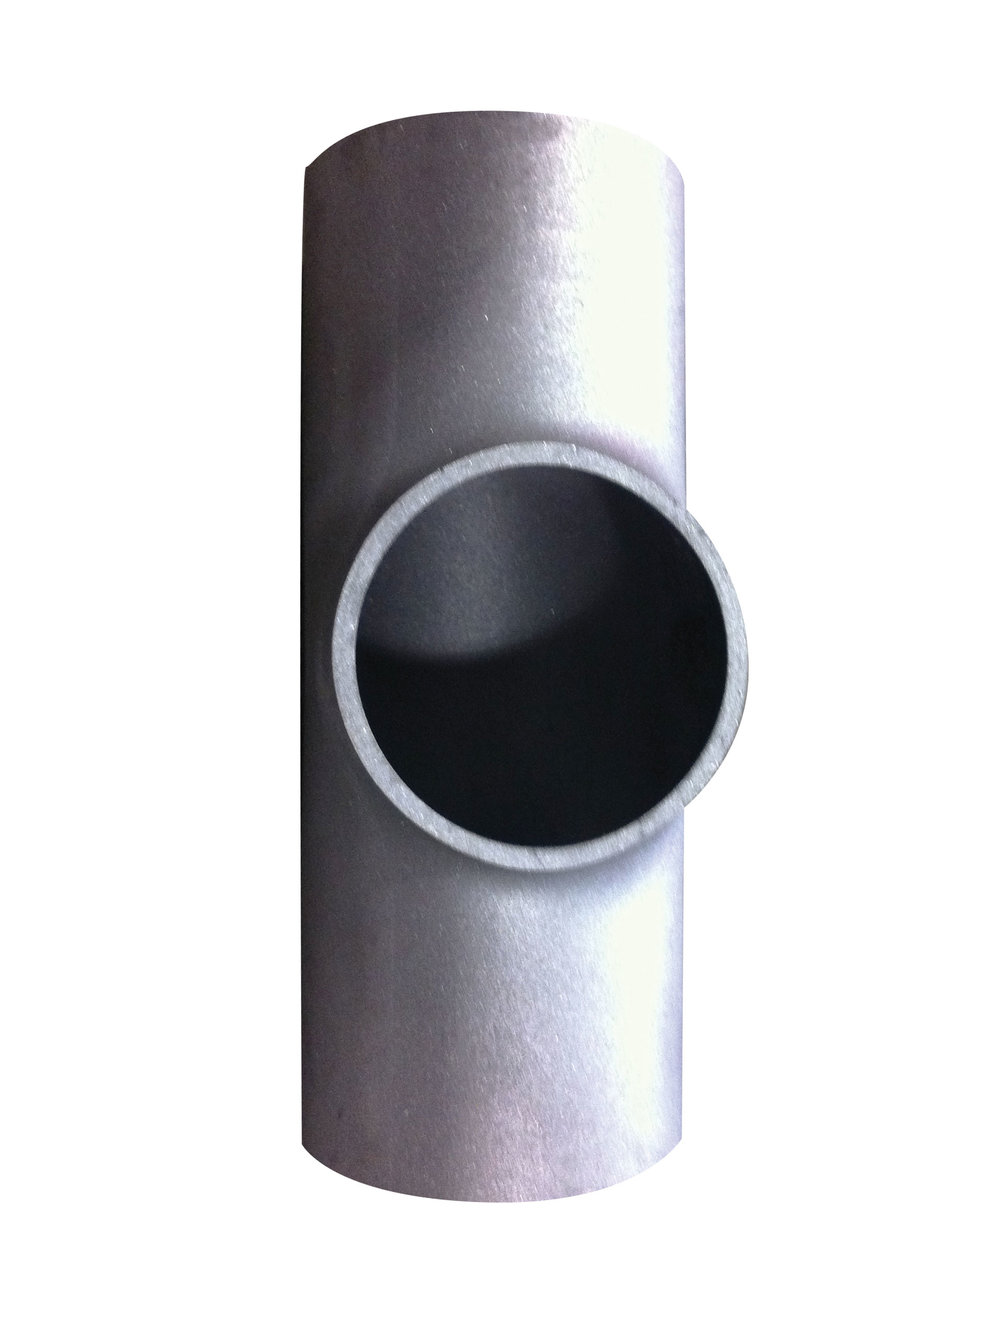 Extruded-Outlet.jpg